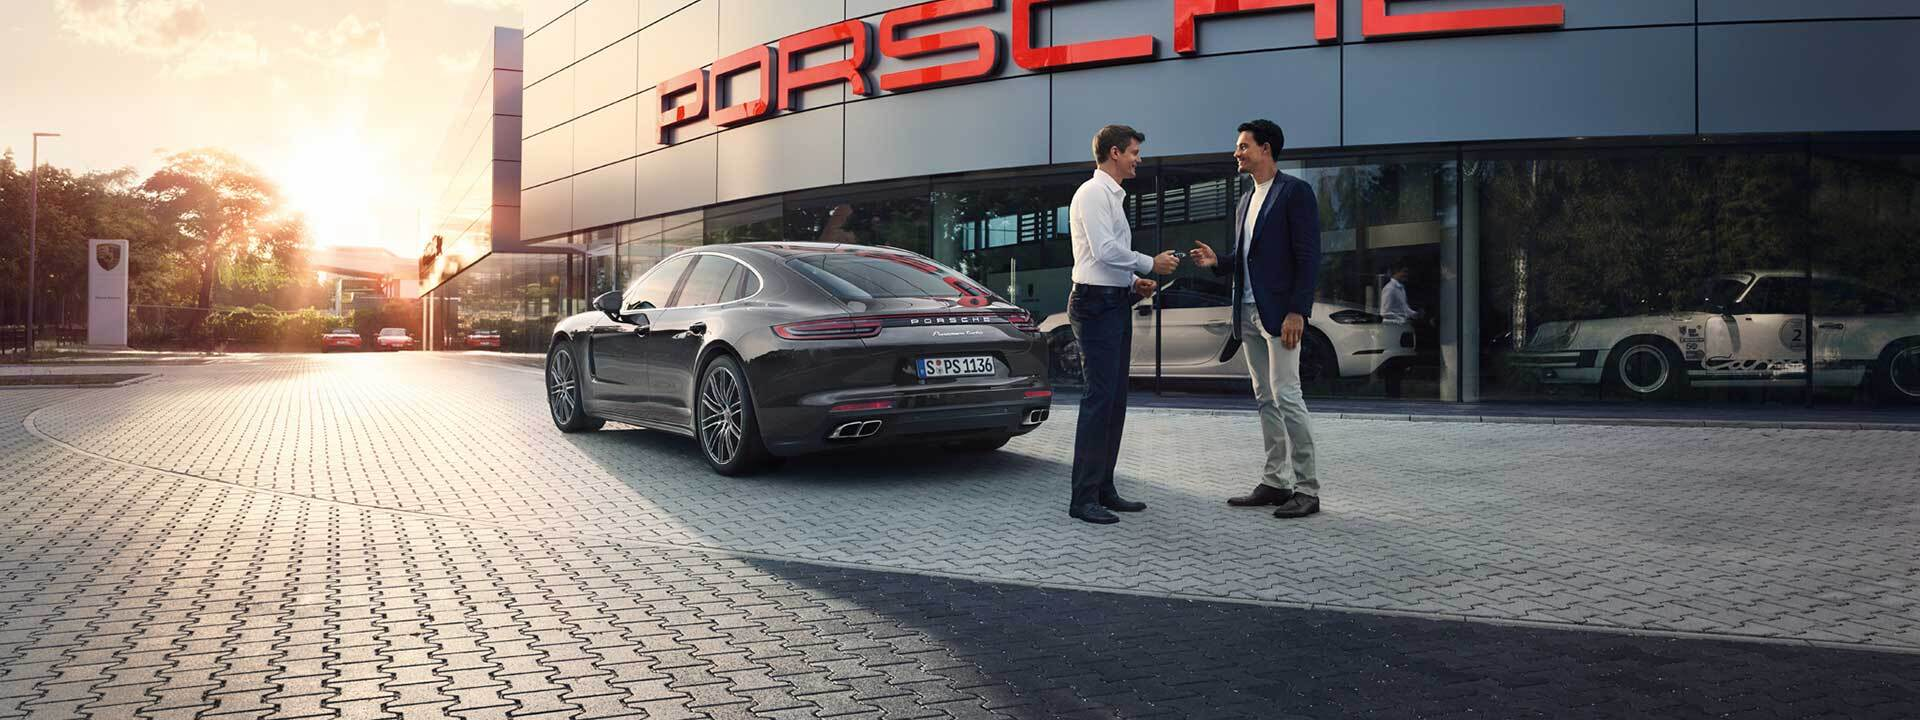 Two people exchanging keys to a Porsche in Colorado Springs, CO